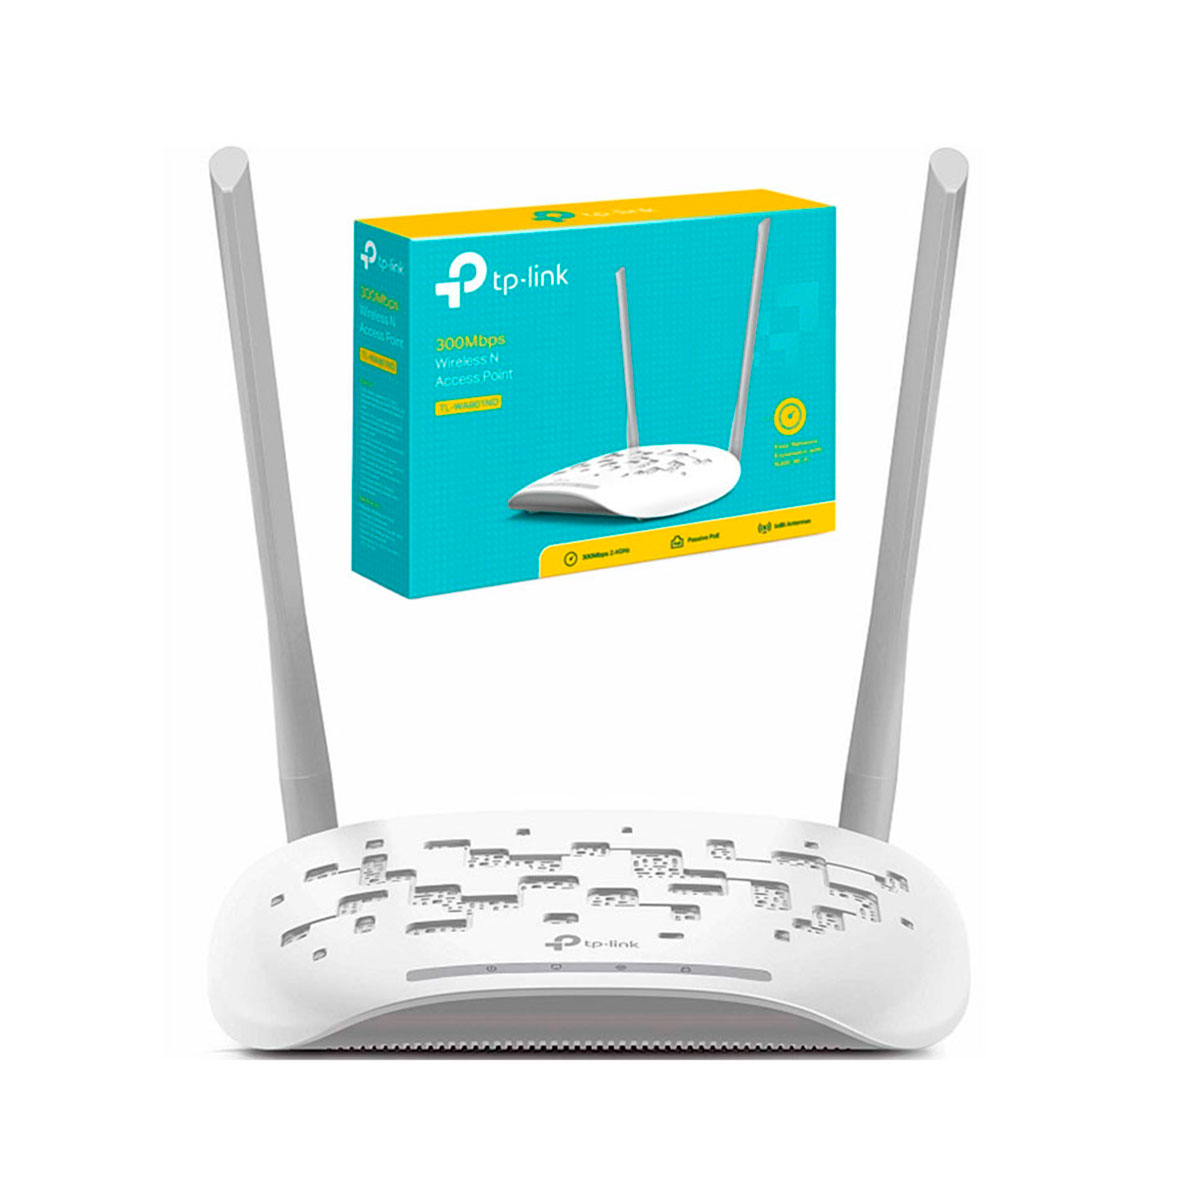 TL-WA801ND TP-LINK                                                      | ROUTER TL-WA7801ND WIFI 300MBPS 2,4GHZ 2 ANTENA